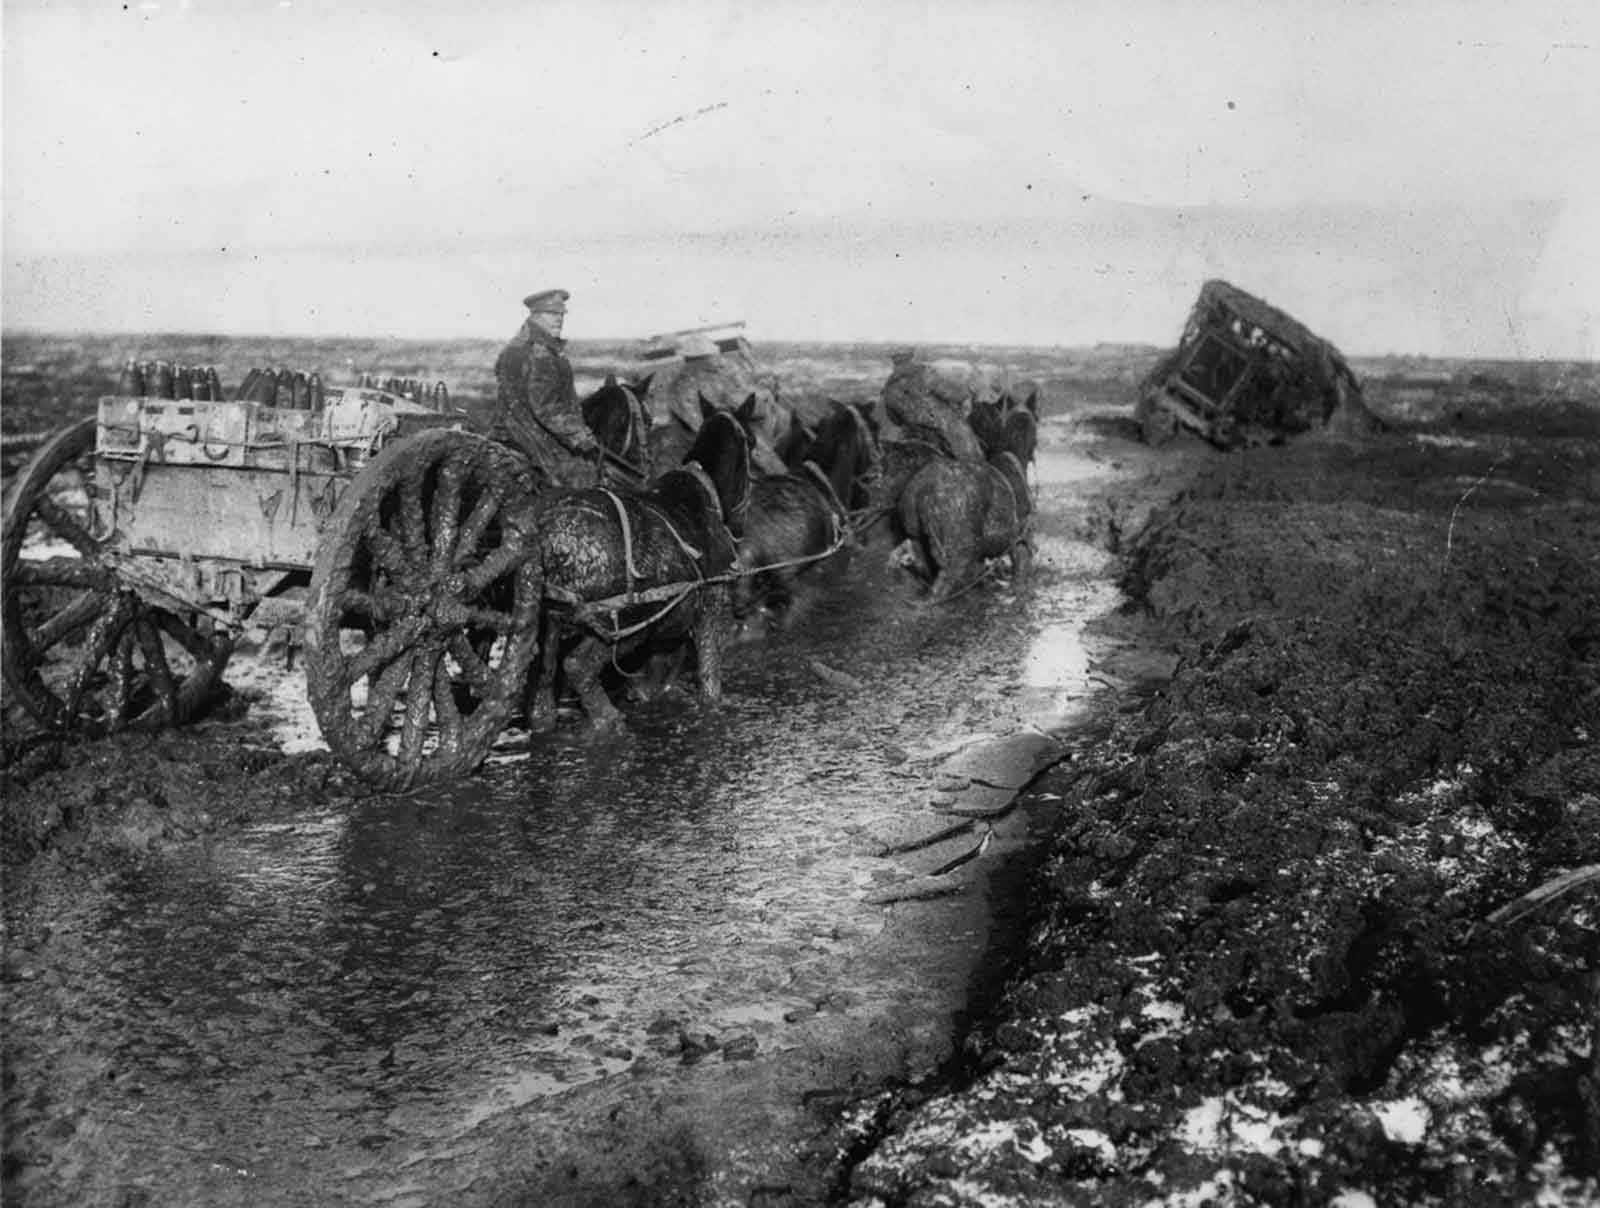 Horses haul ammunition forward in deep mud along the Lesboeufs Road outside Flers. November, 1916.